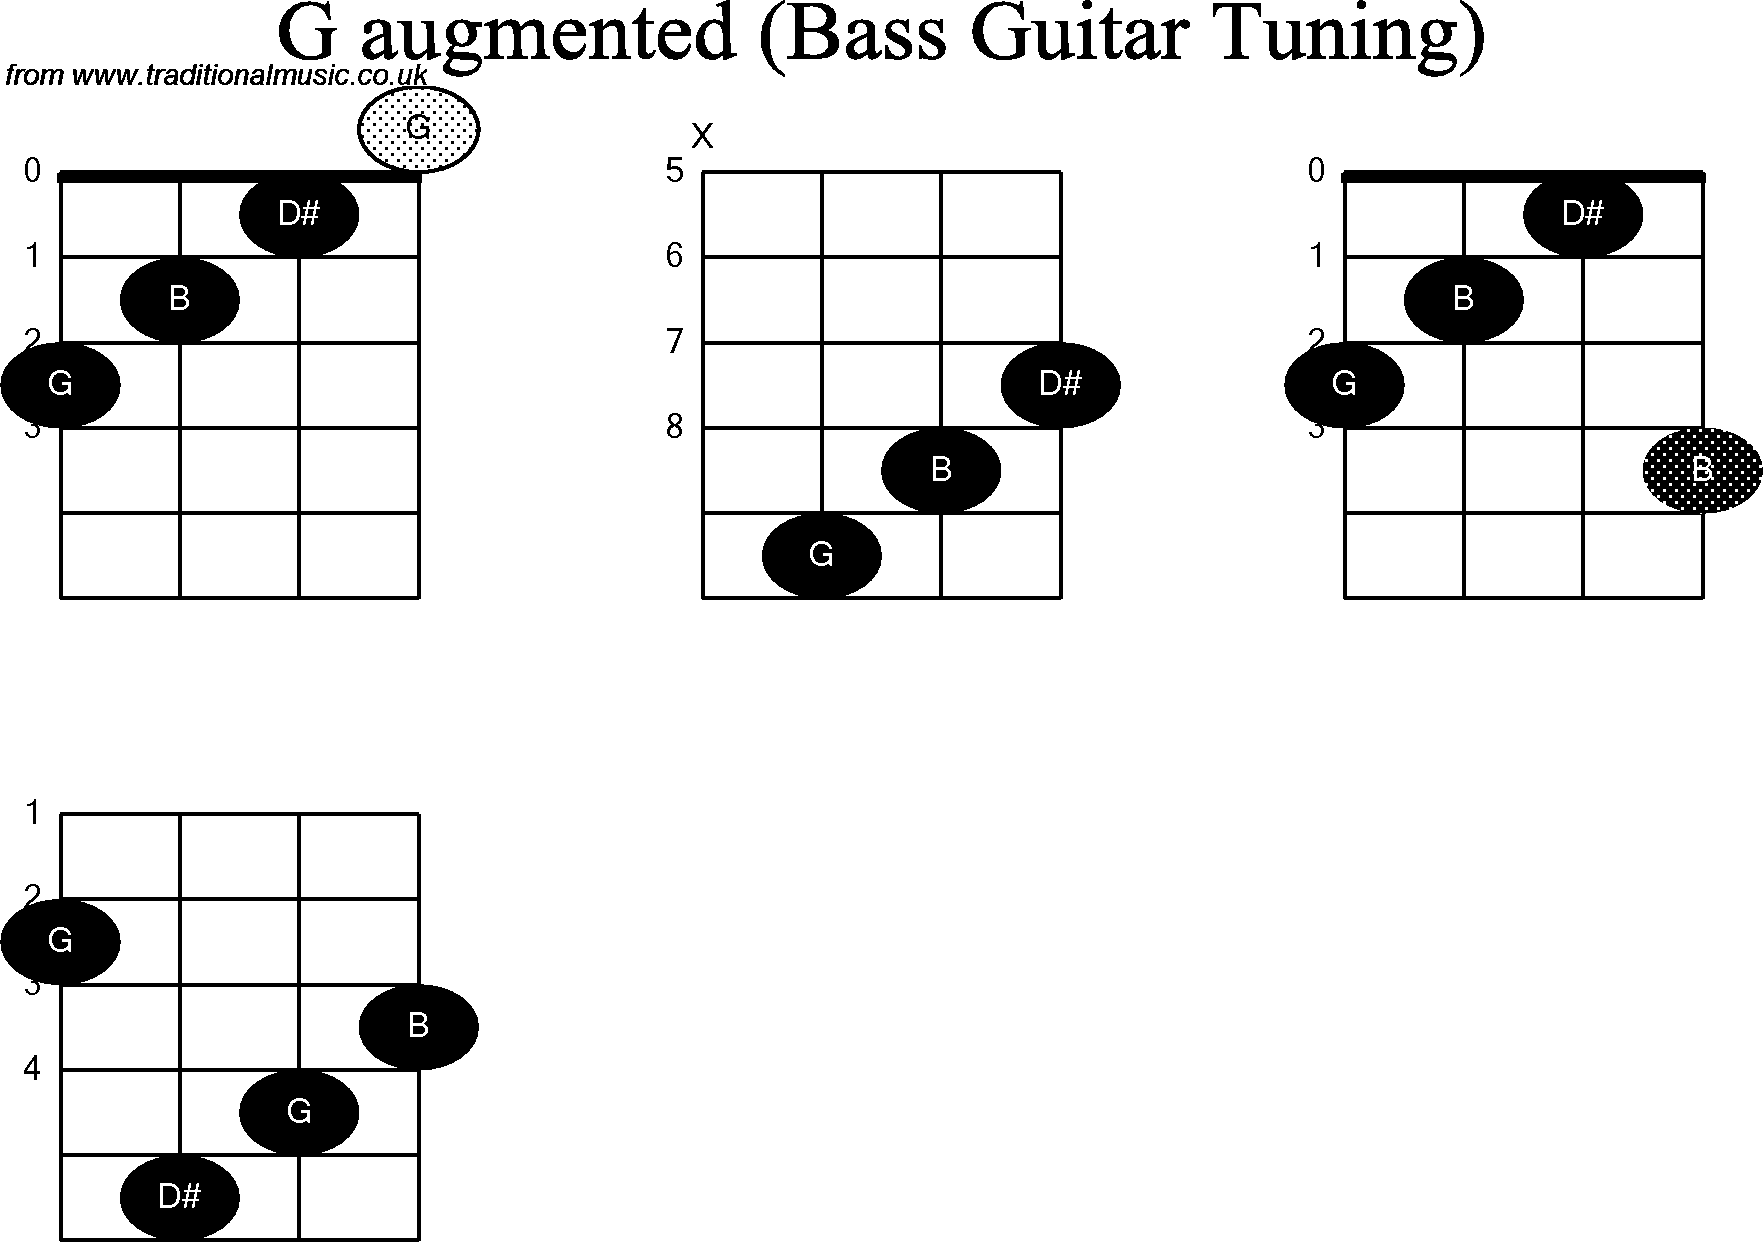 Bass Guitar Chord Diagrams For G Augmented